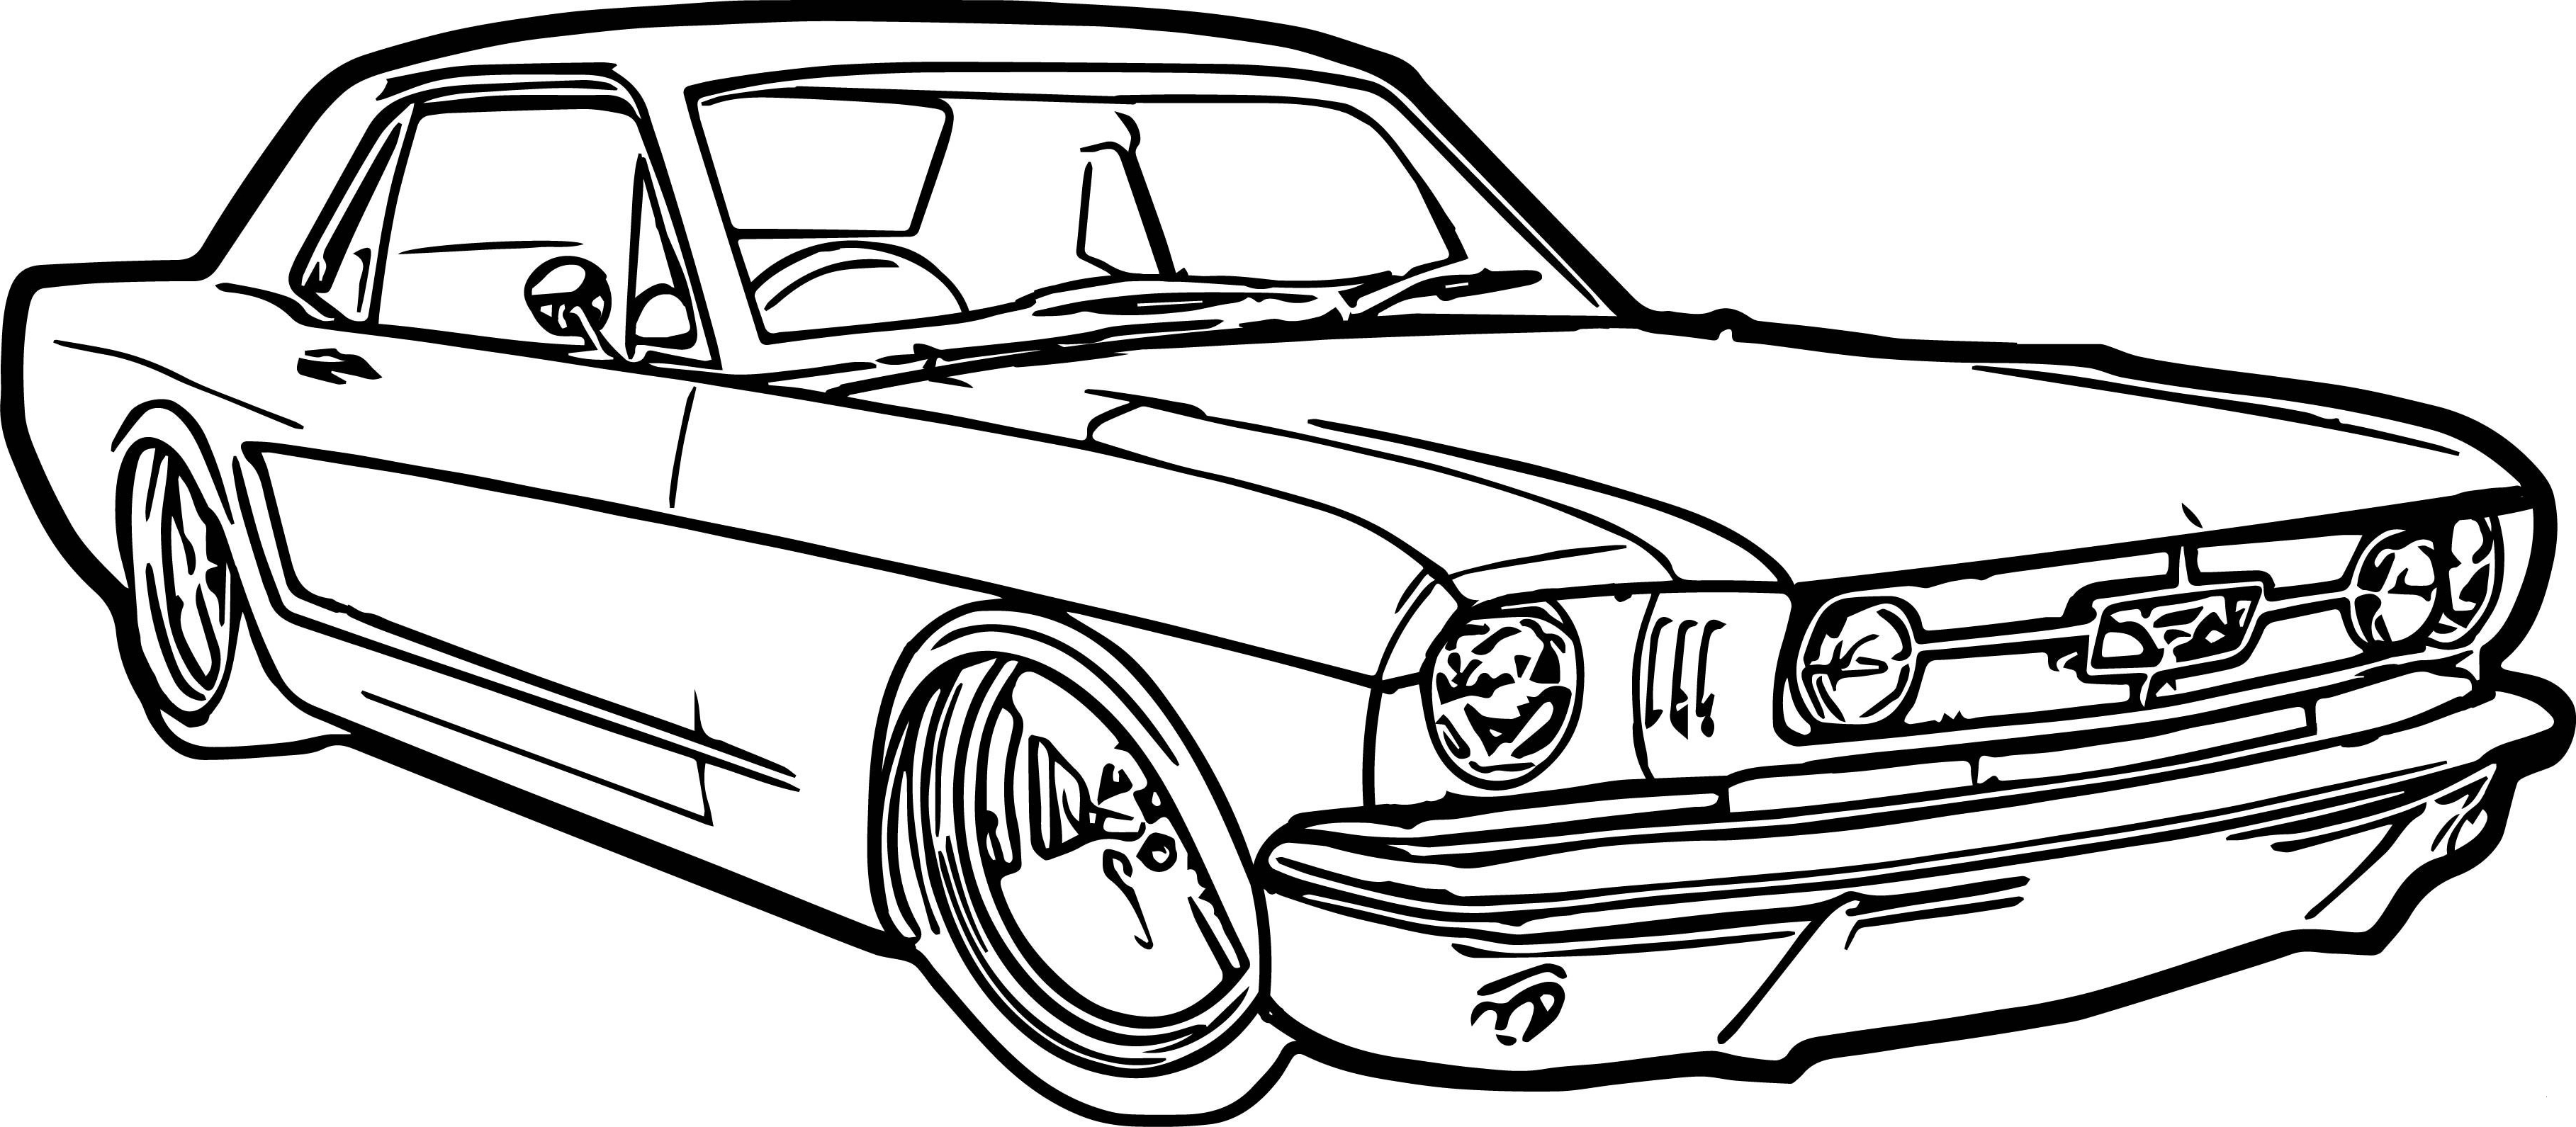 car drawing for coloring cars coloring pages  free large images for car drawing coloring